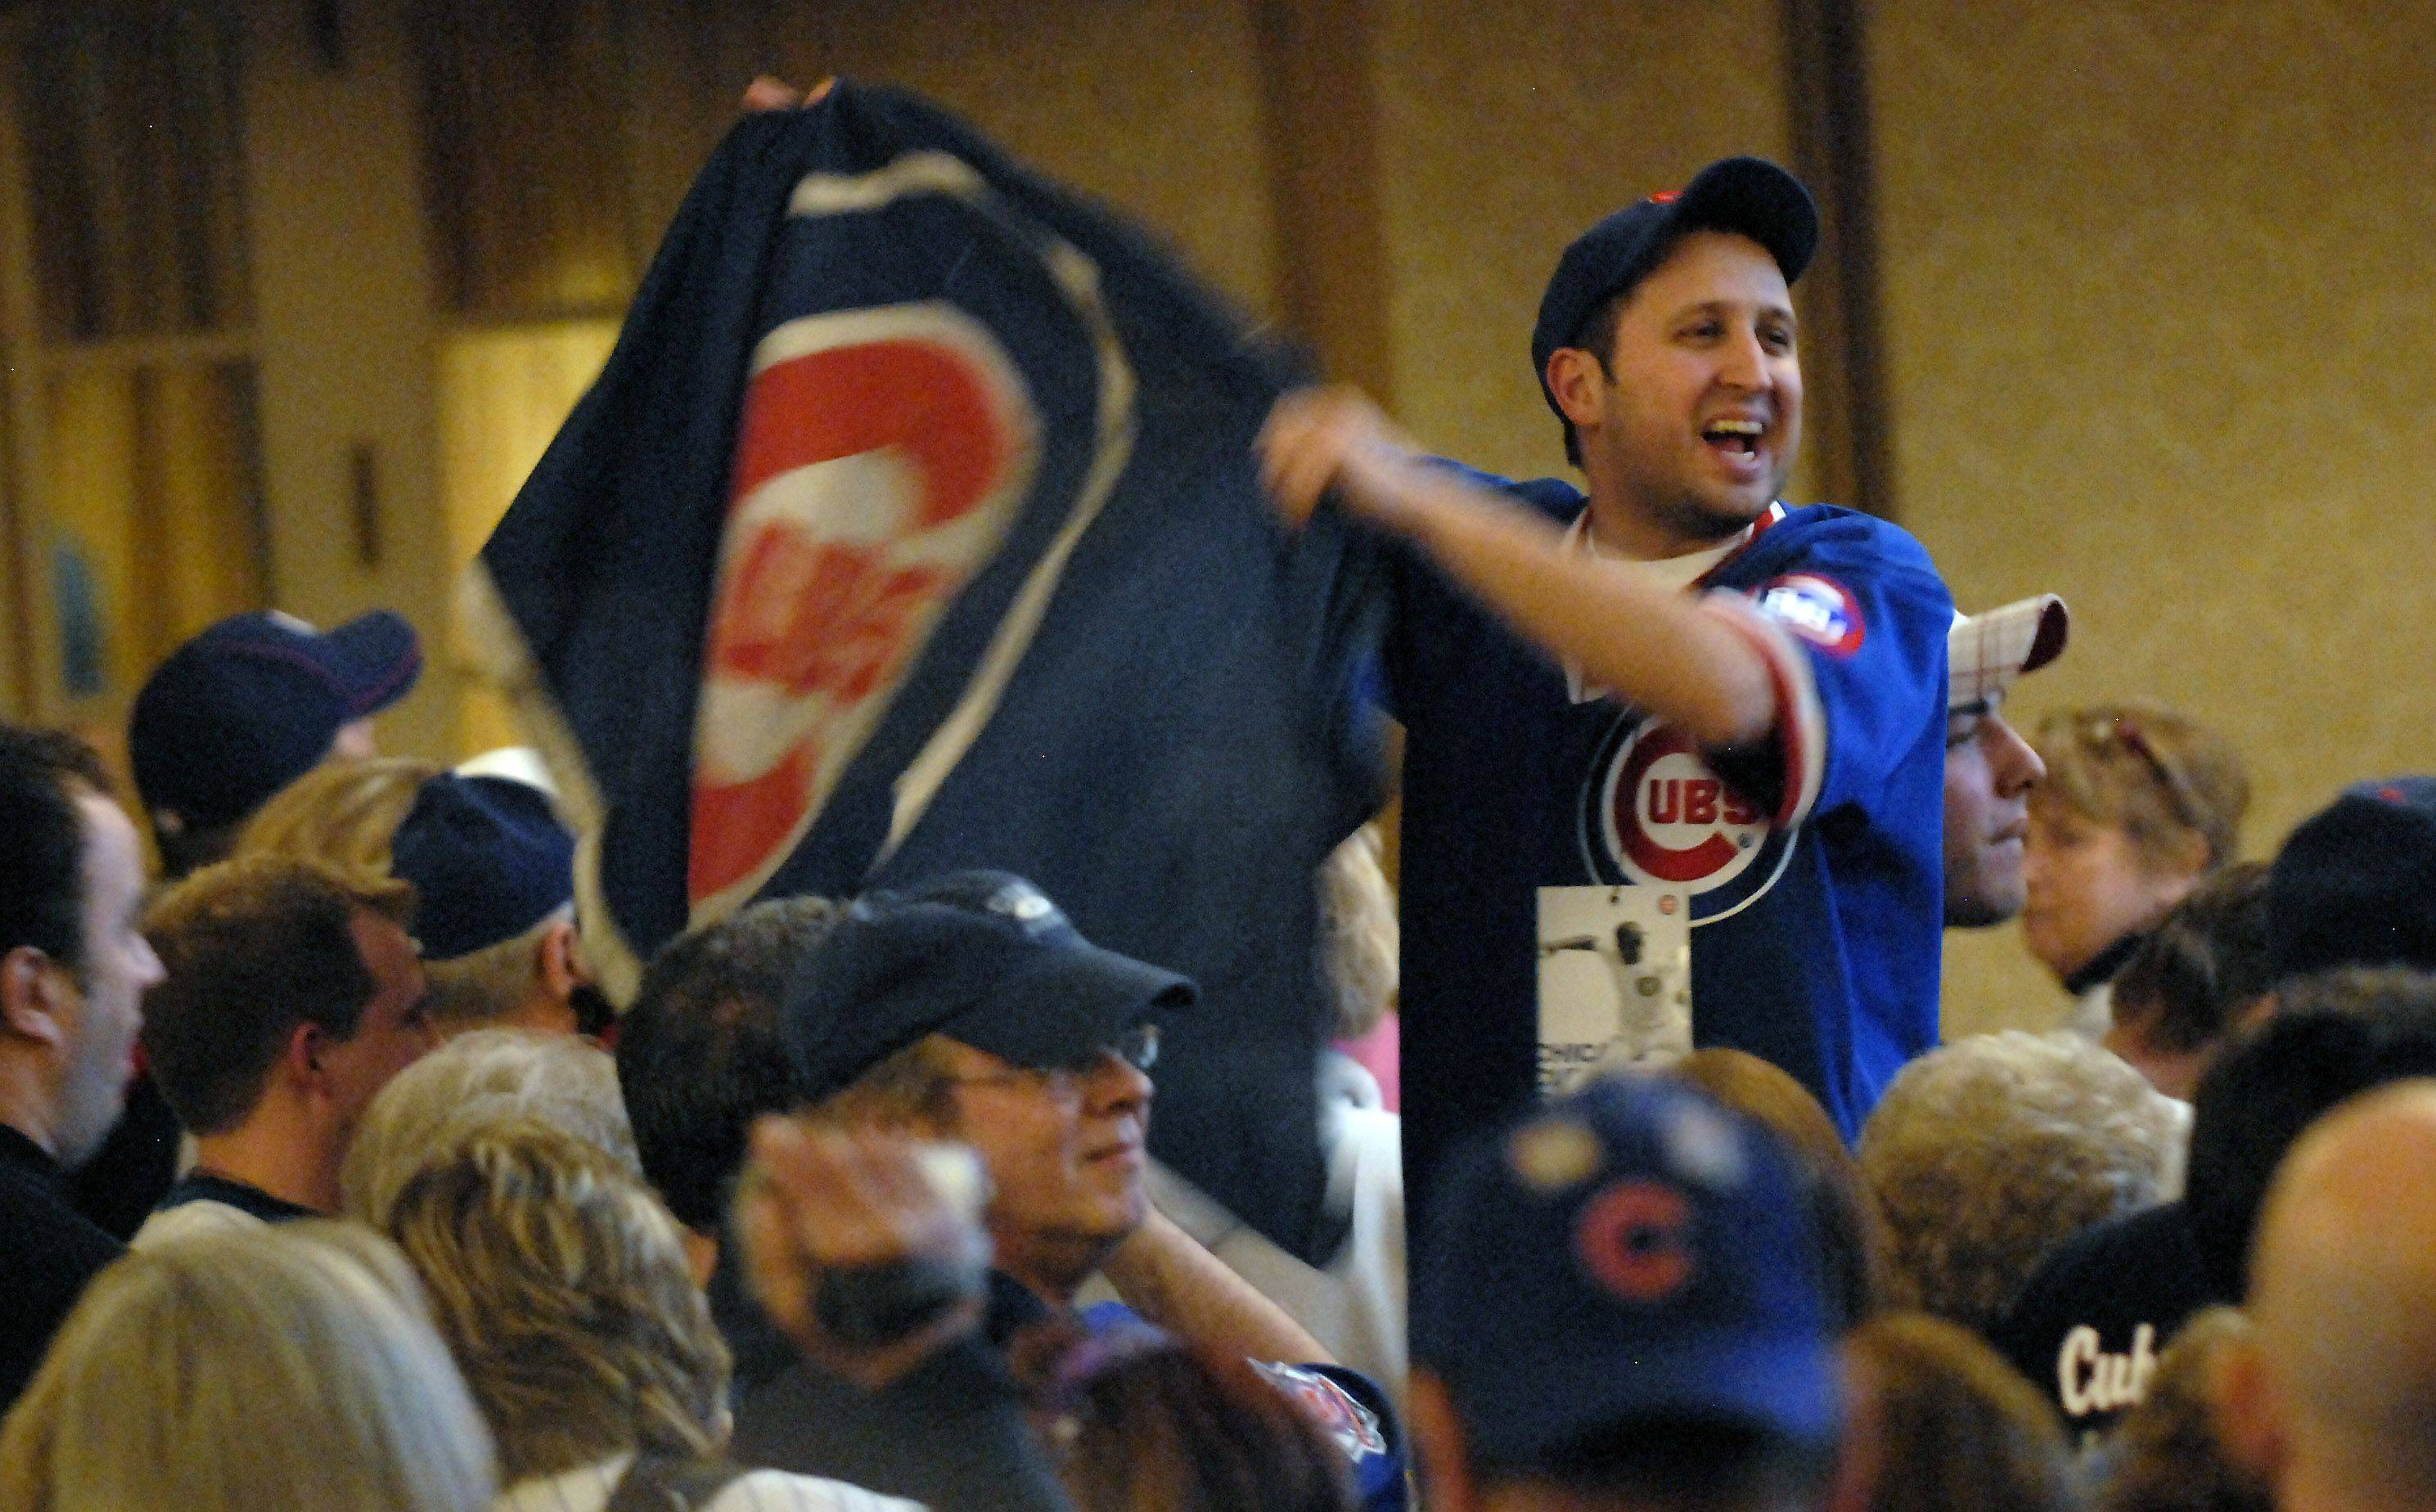 Paul Dzien of Bartlett leads a chant for Ron Santo.